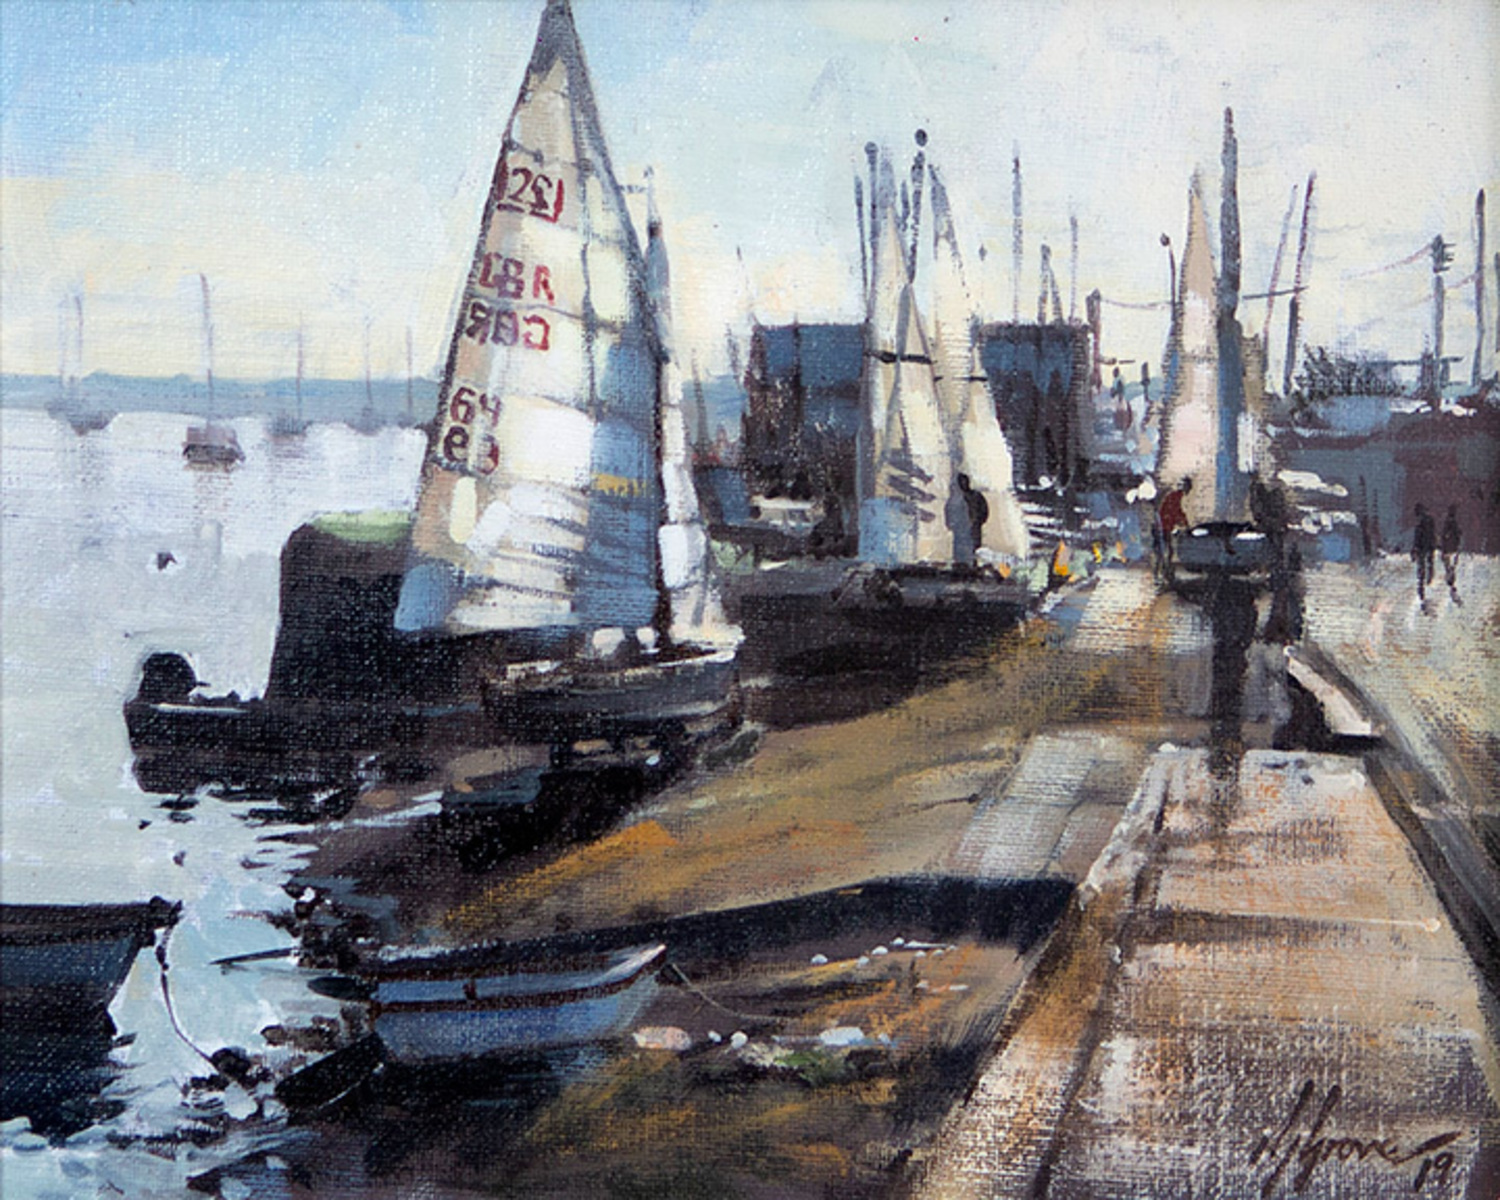 Preparing the Dinghies, Wells-next-the-Sea, Norfolk Paintings by Nick Grove Artist